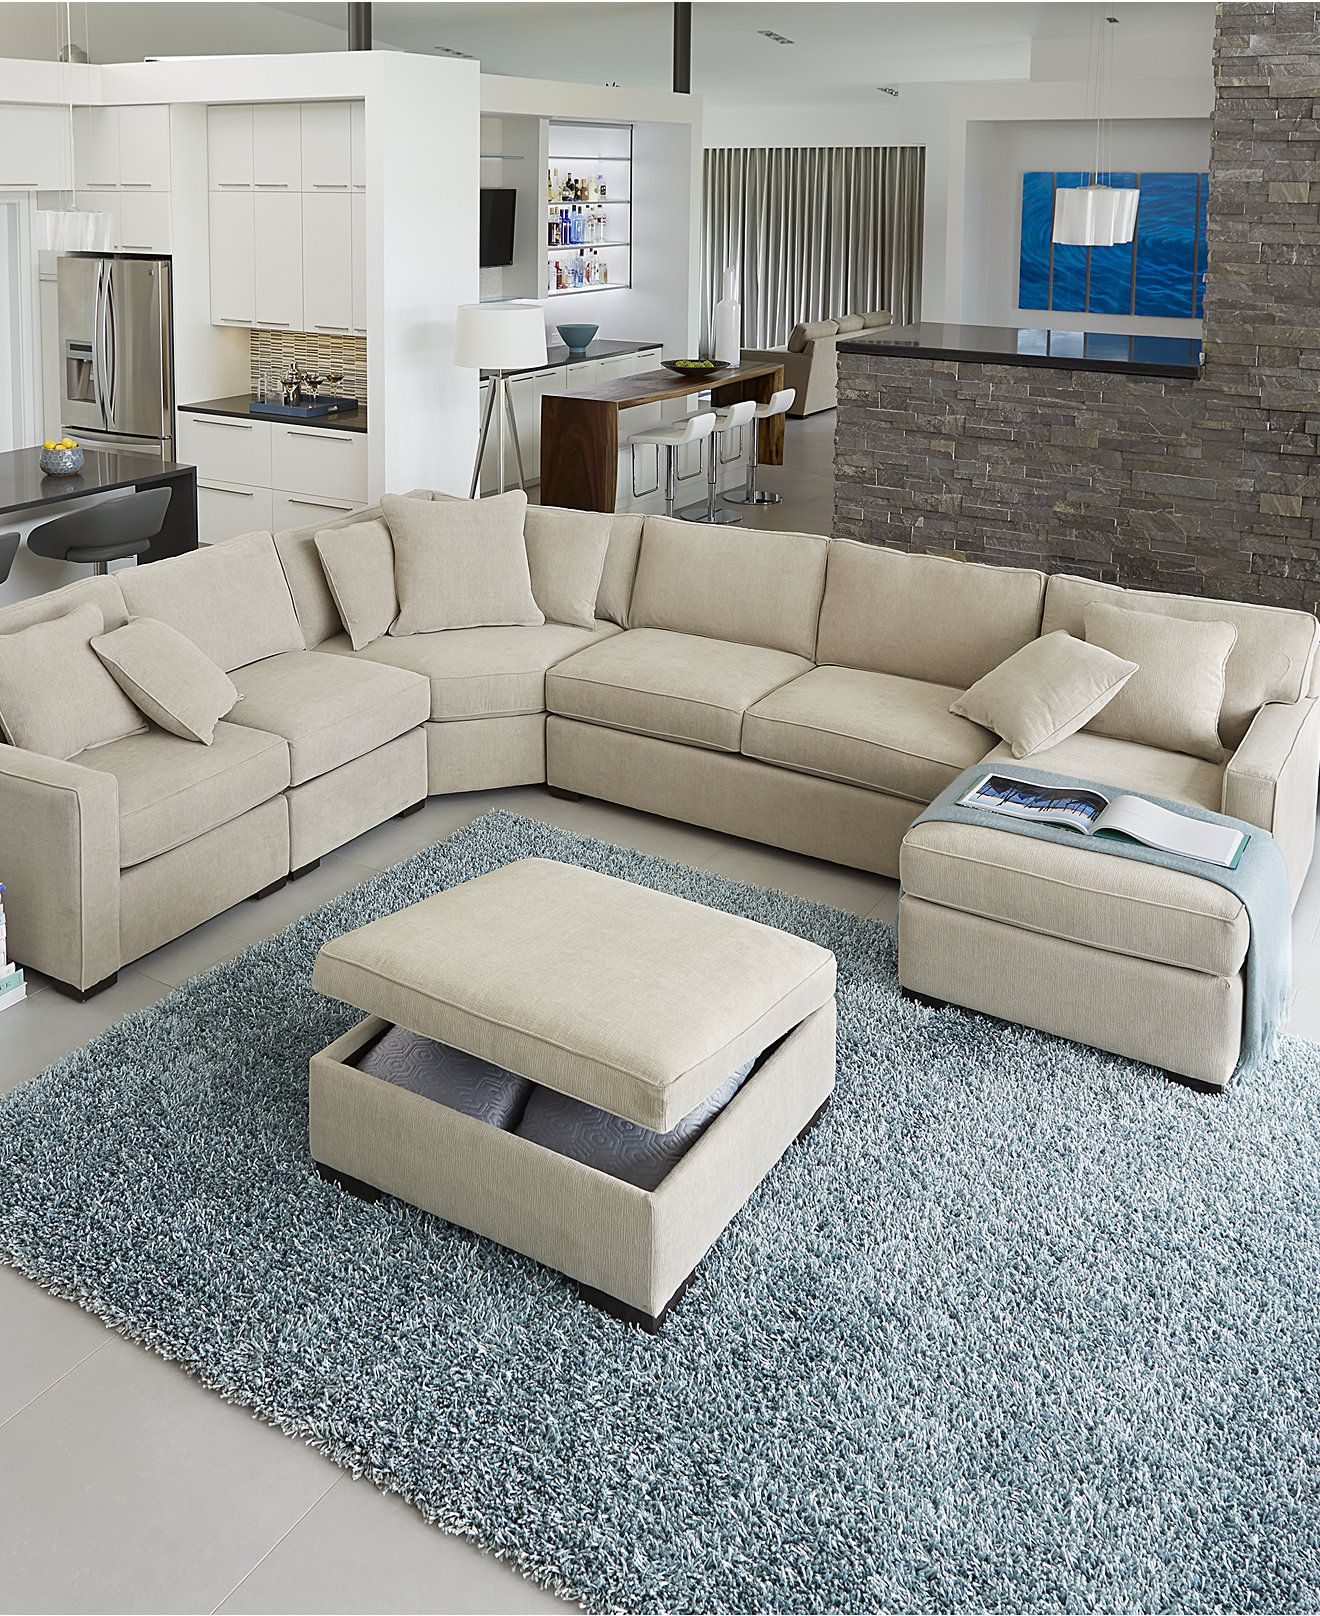 leather or fabric sofa for family room under 6000 radley sectional collection created macy